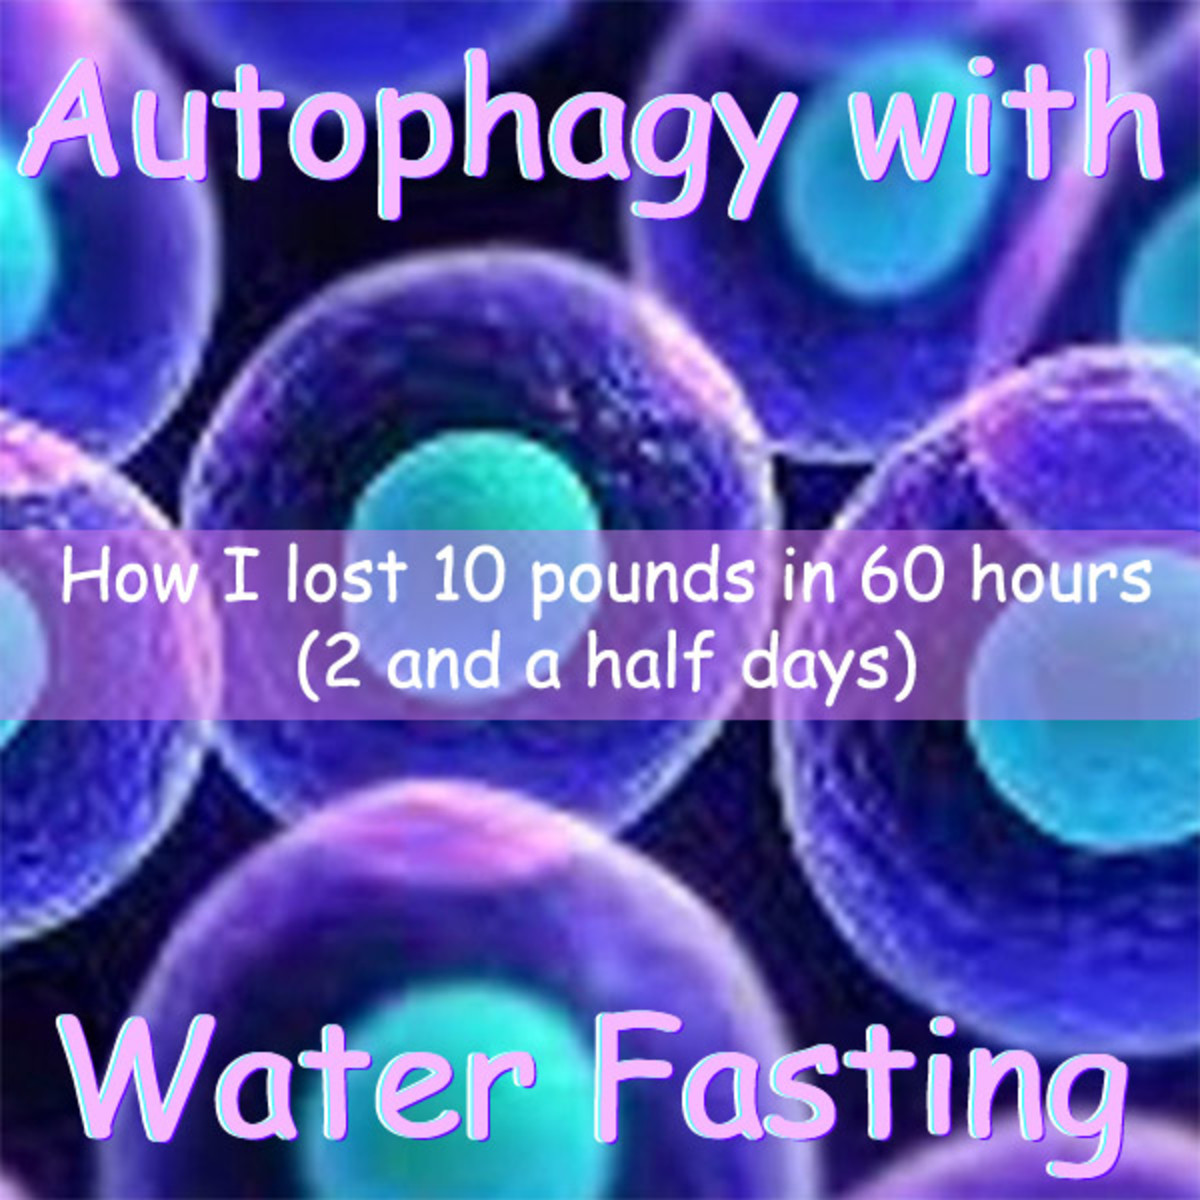 autophagy-and-water-fasting-how-i-lost-10-pounds-in-60-hours-2-and-a-half-days